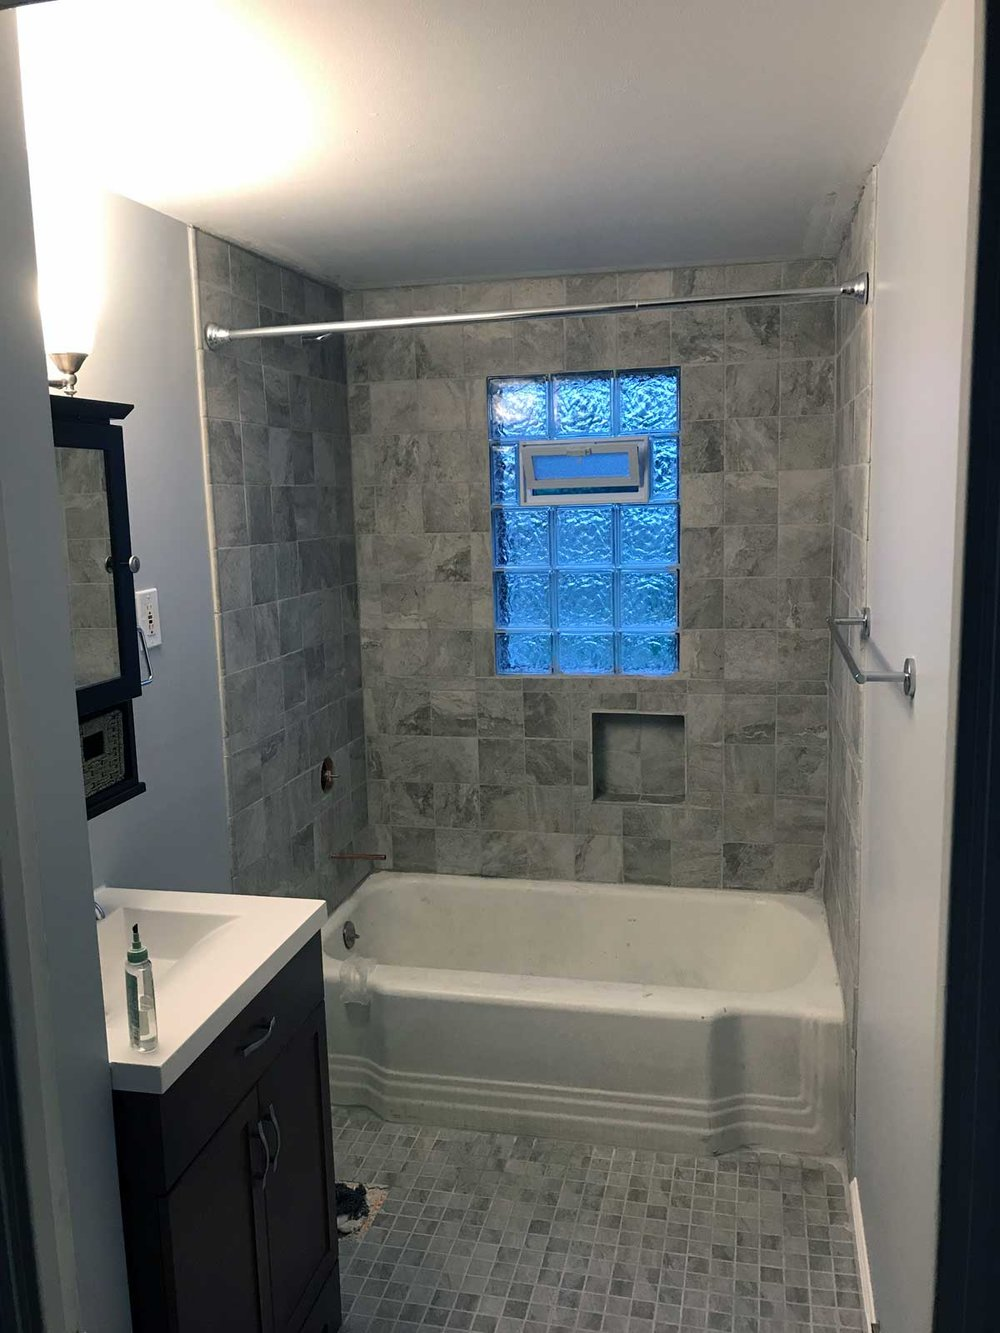 Home Renovation - Bathroom